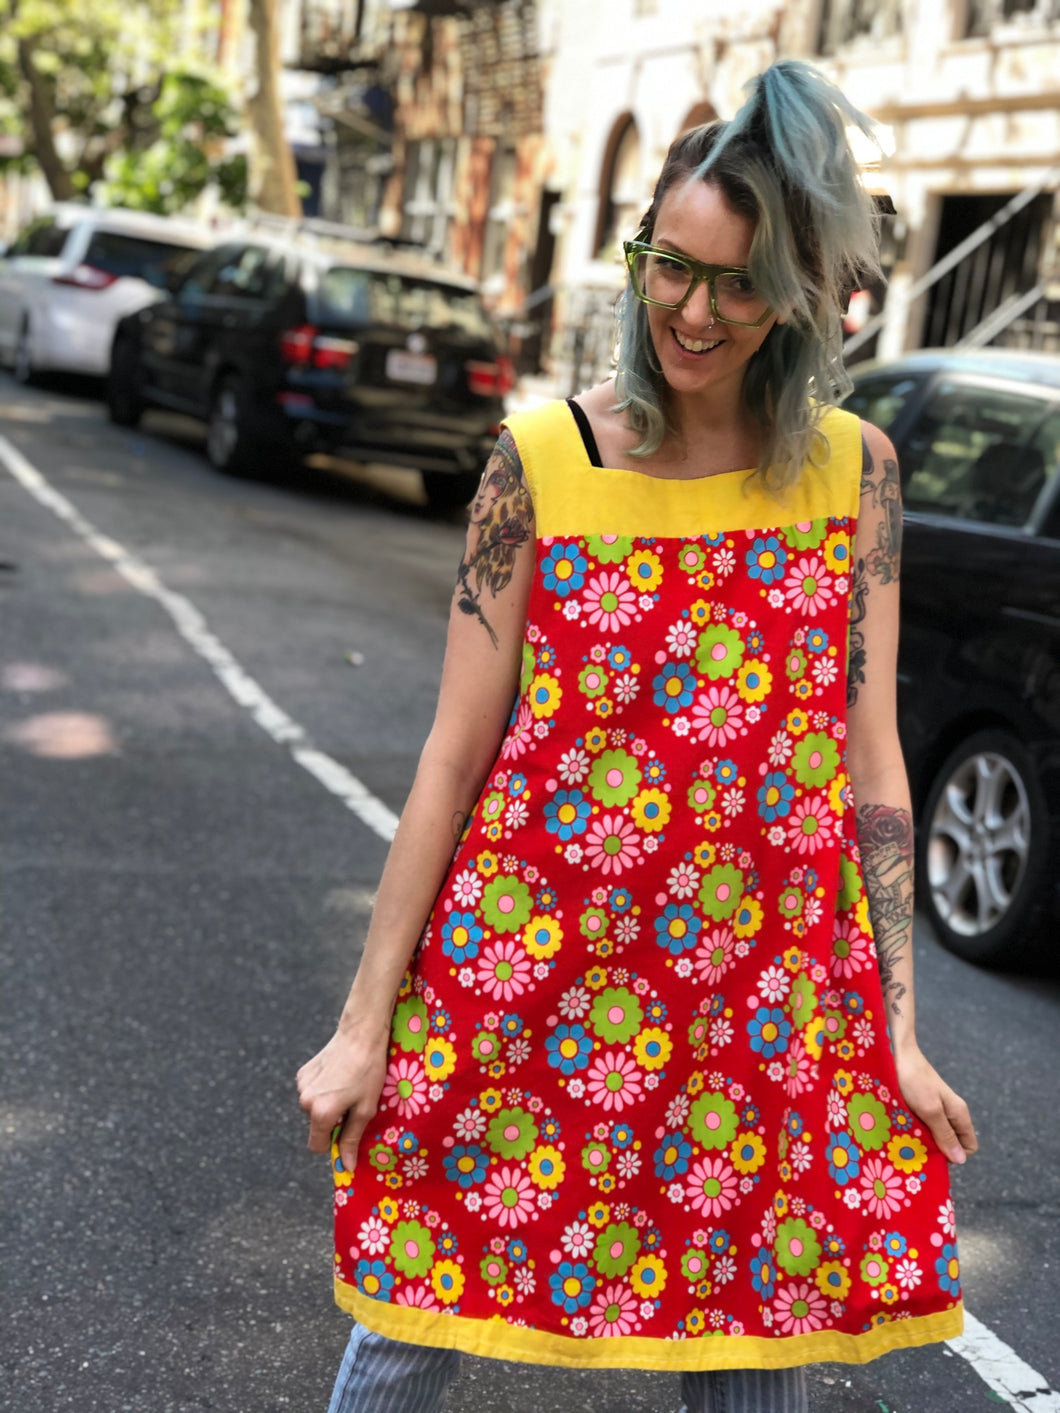 Vintage 60's Psychedelic Floral Midi Dress | Dresses - 80s 90s Retro Vintage Clothing | Spark Pretty